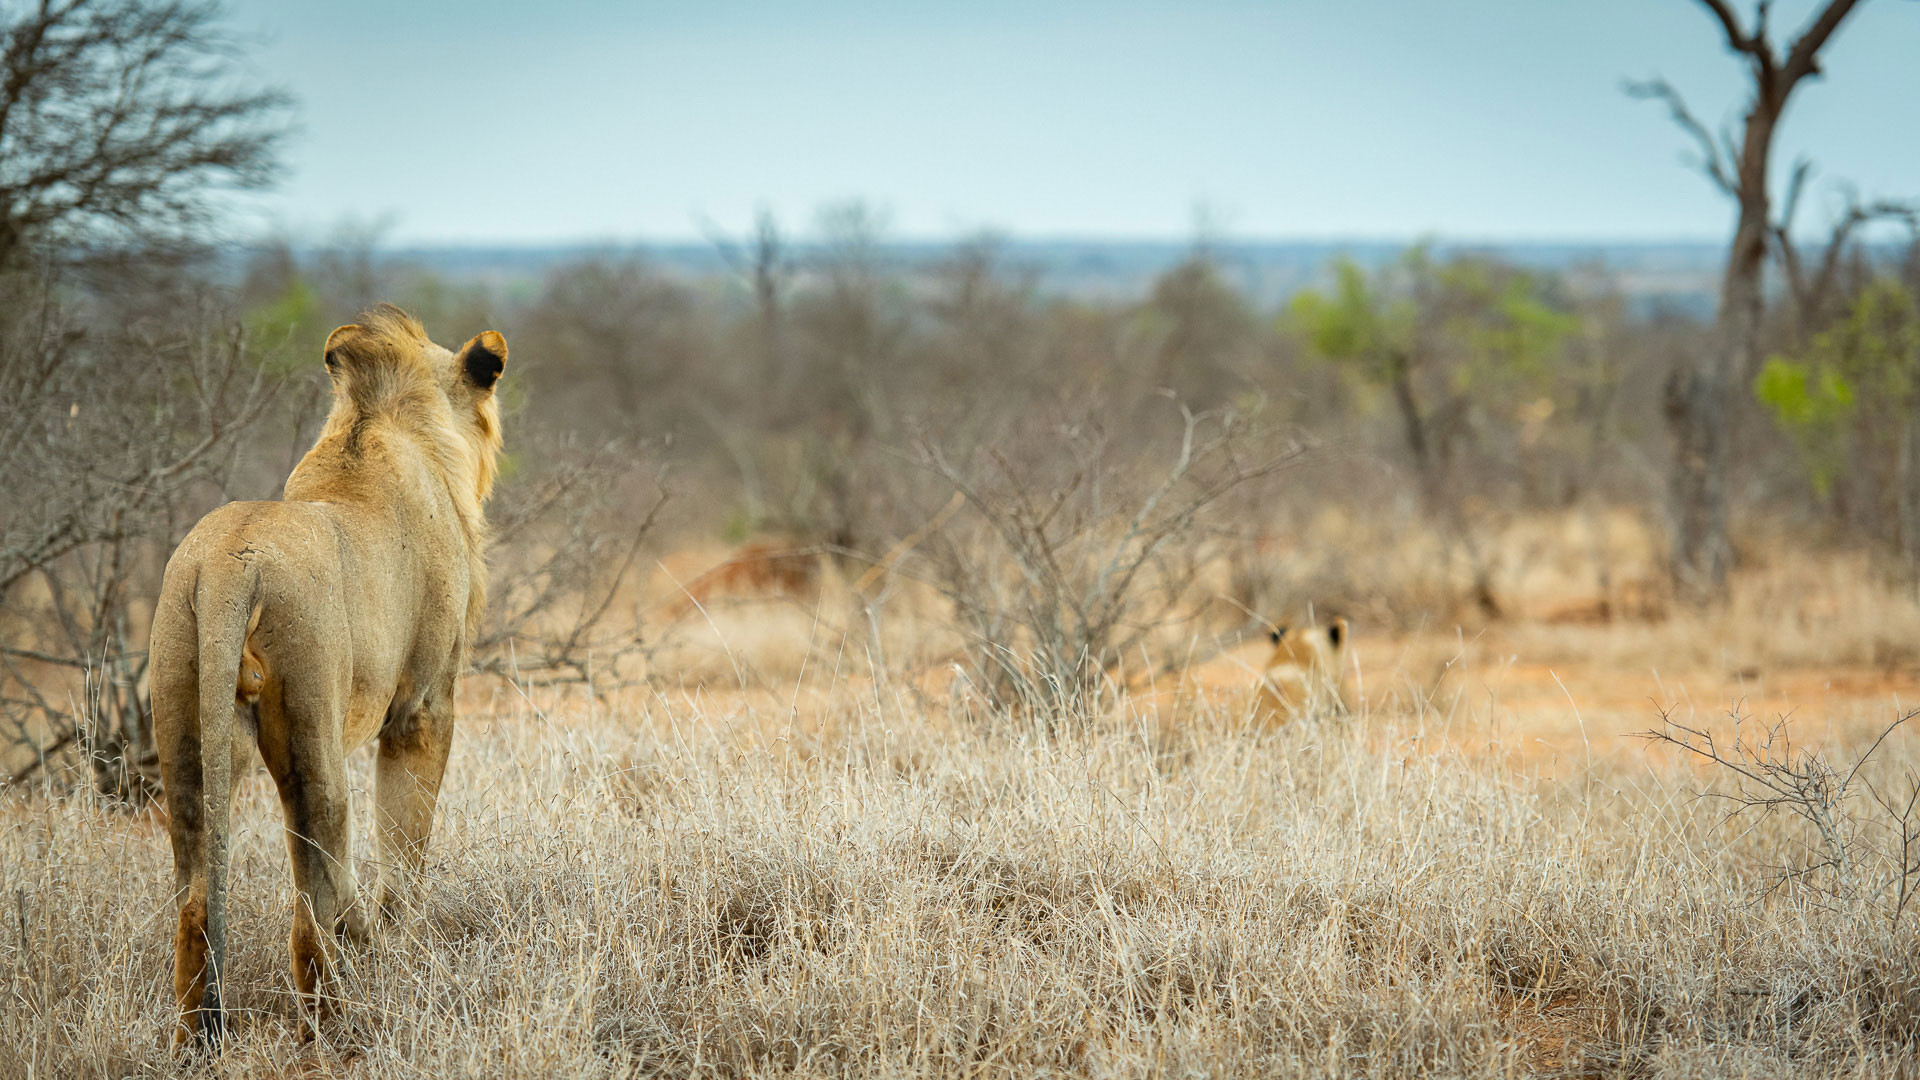 Tanda Tula - lion in the Greater Kruger